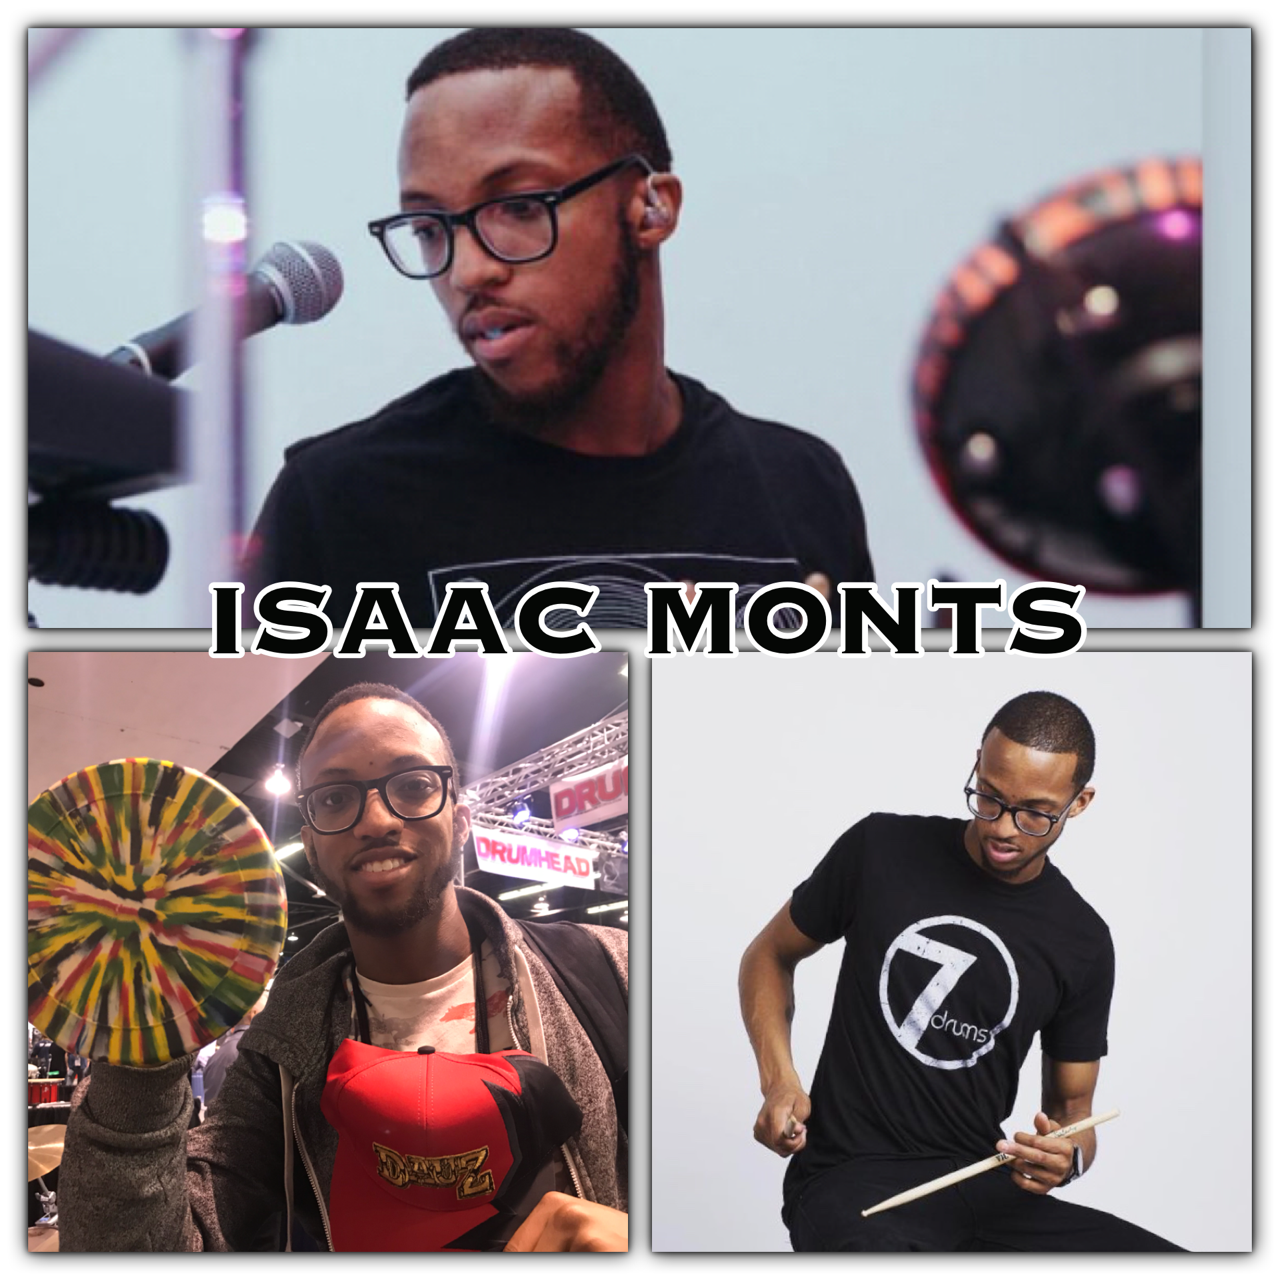 ISAAC MONTS